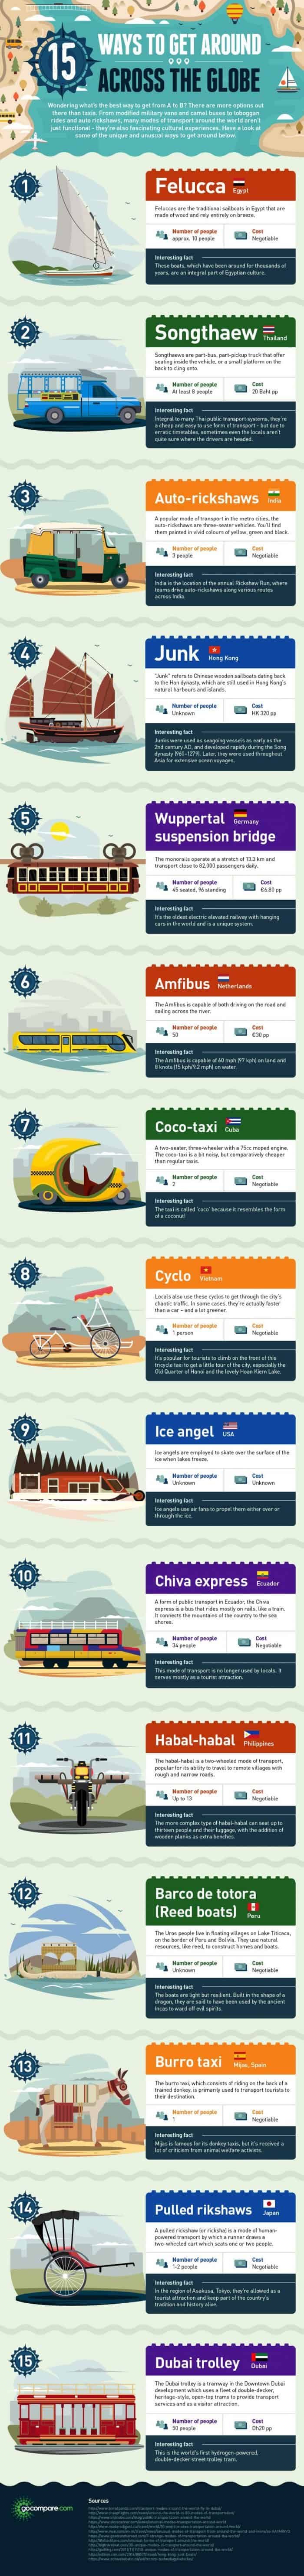 Infographic showing some interesting transport alternatives from all around the world.